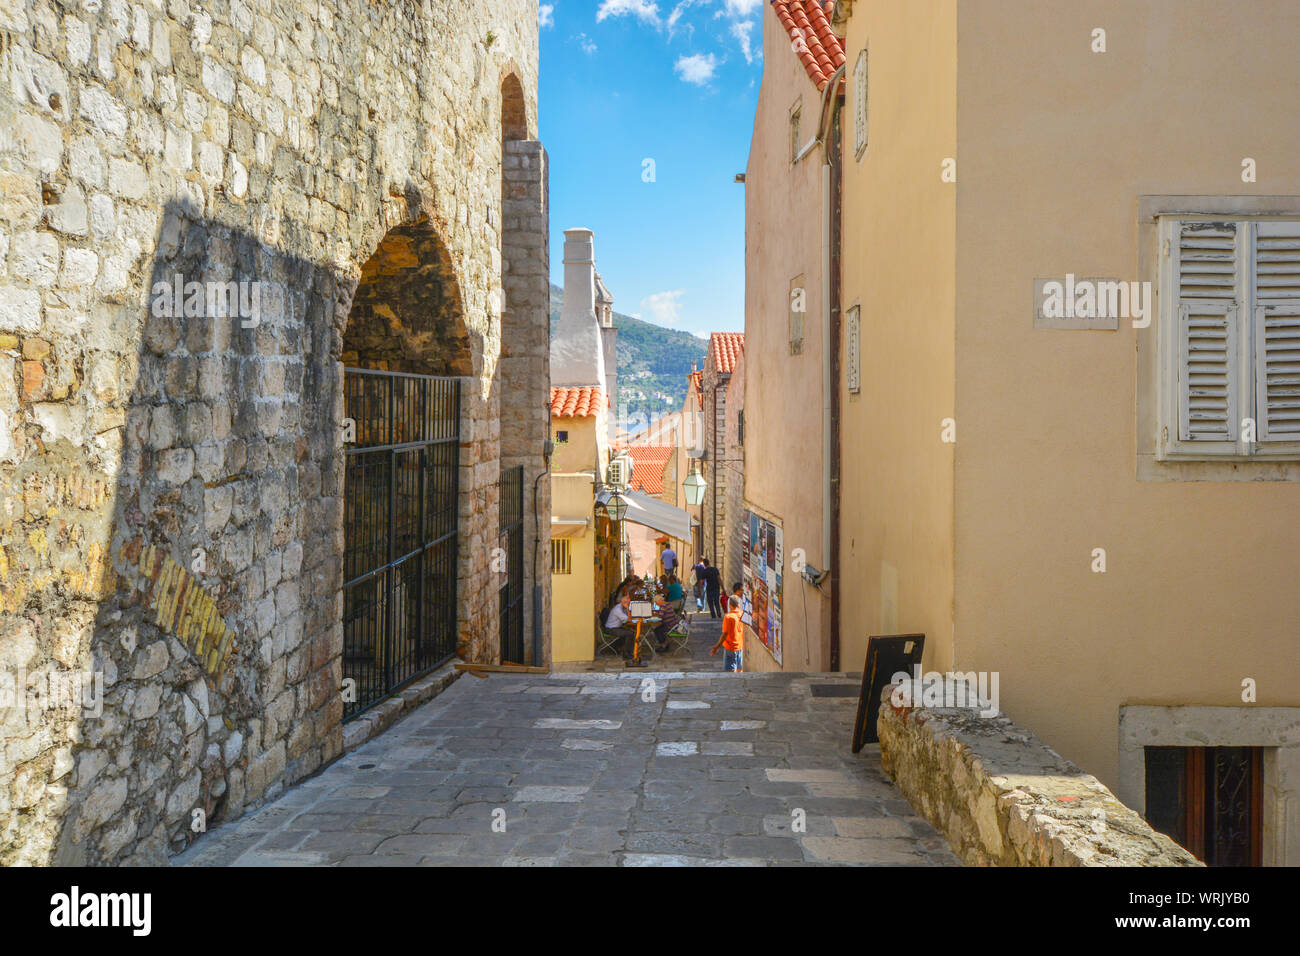 Tourists enjoy a meal at a sidewalk cafe on one of the narrow alleys inside the ancient walled city of Dubrovnik, Croatia. Stock Photo